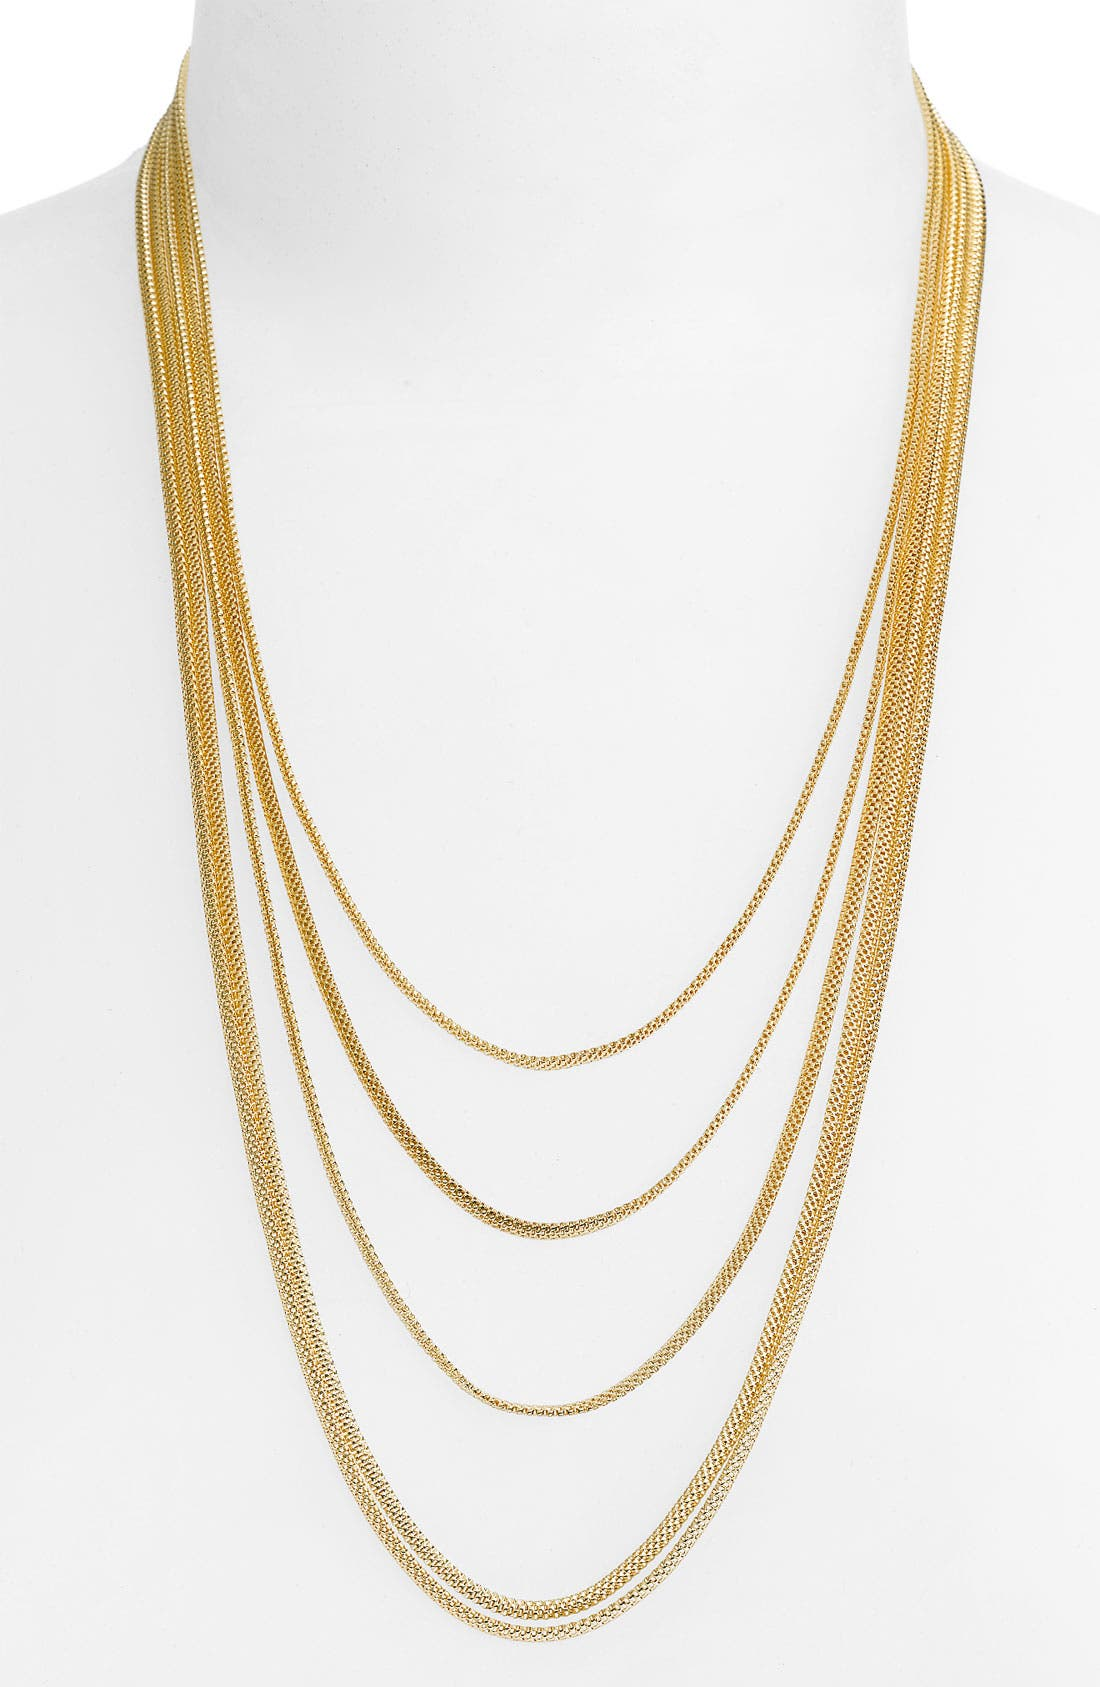 Main Image - Roberto Coin Yellow Gold Fluid Necklace